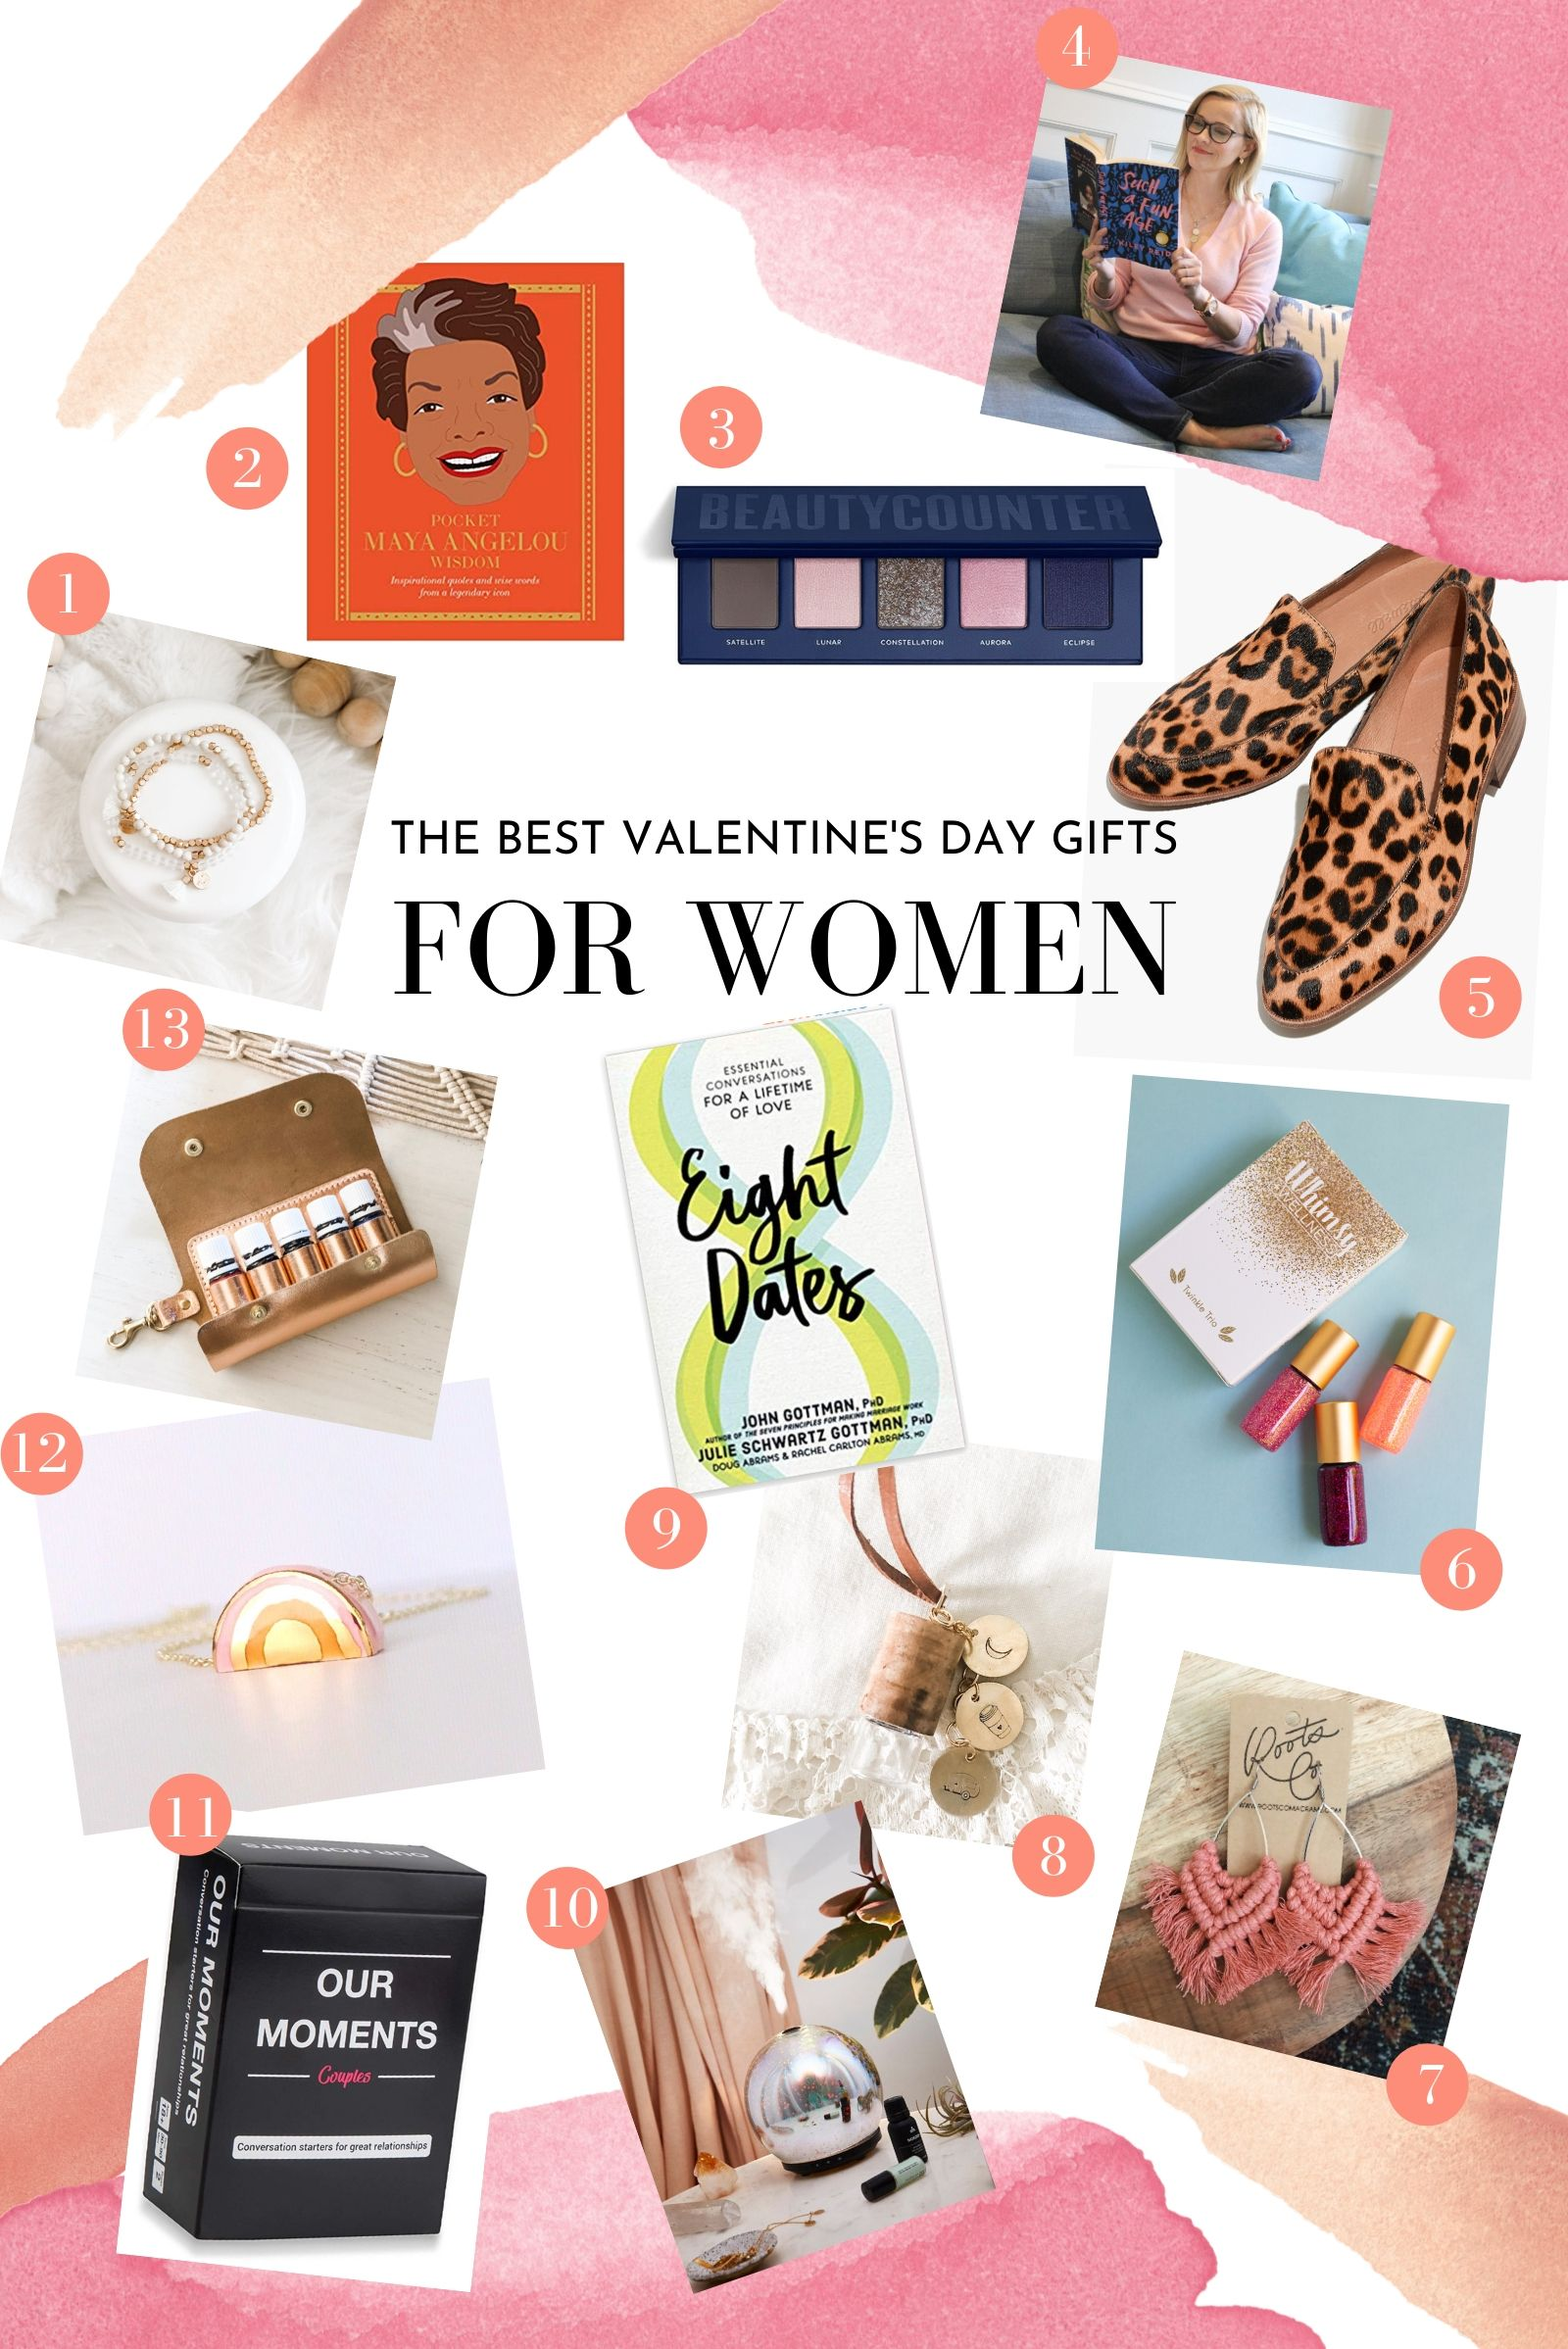 best valentine's day gifts for women 2020 whimsy and wellness